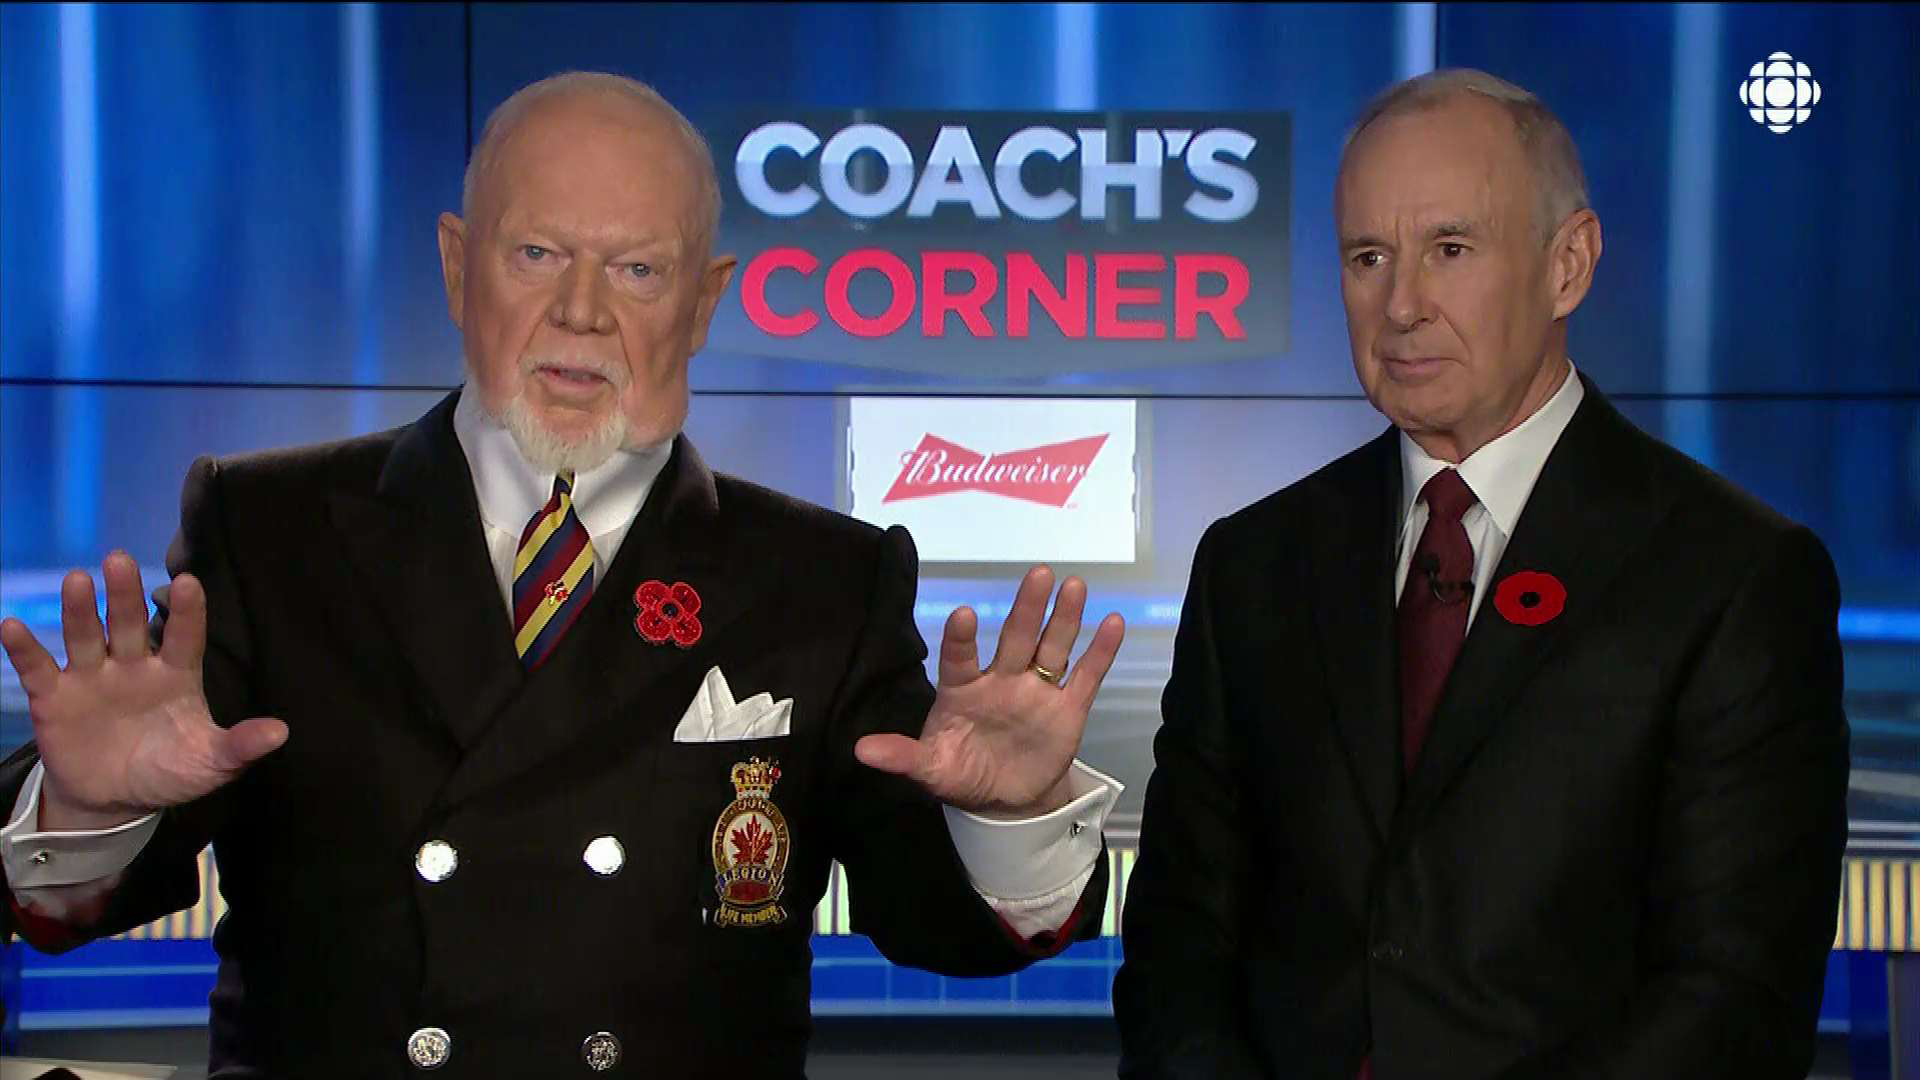 NHL, Sportsnet condemn Don Cherry's immigrant comments during HNIC broadcast